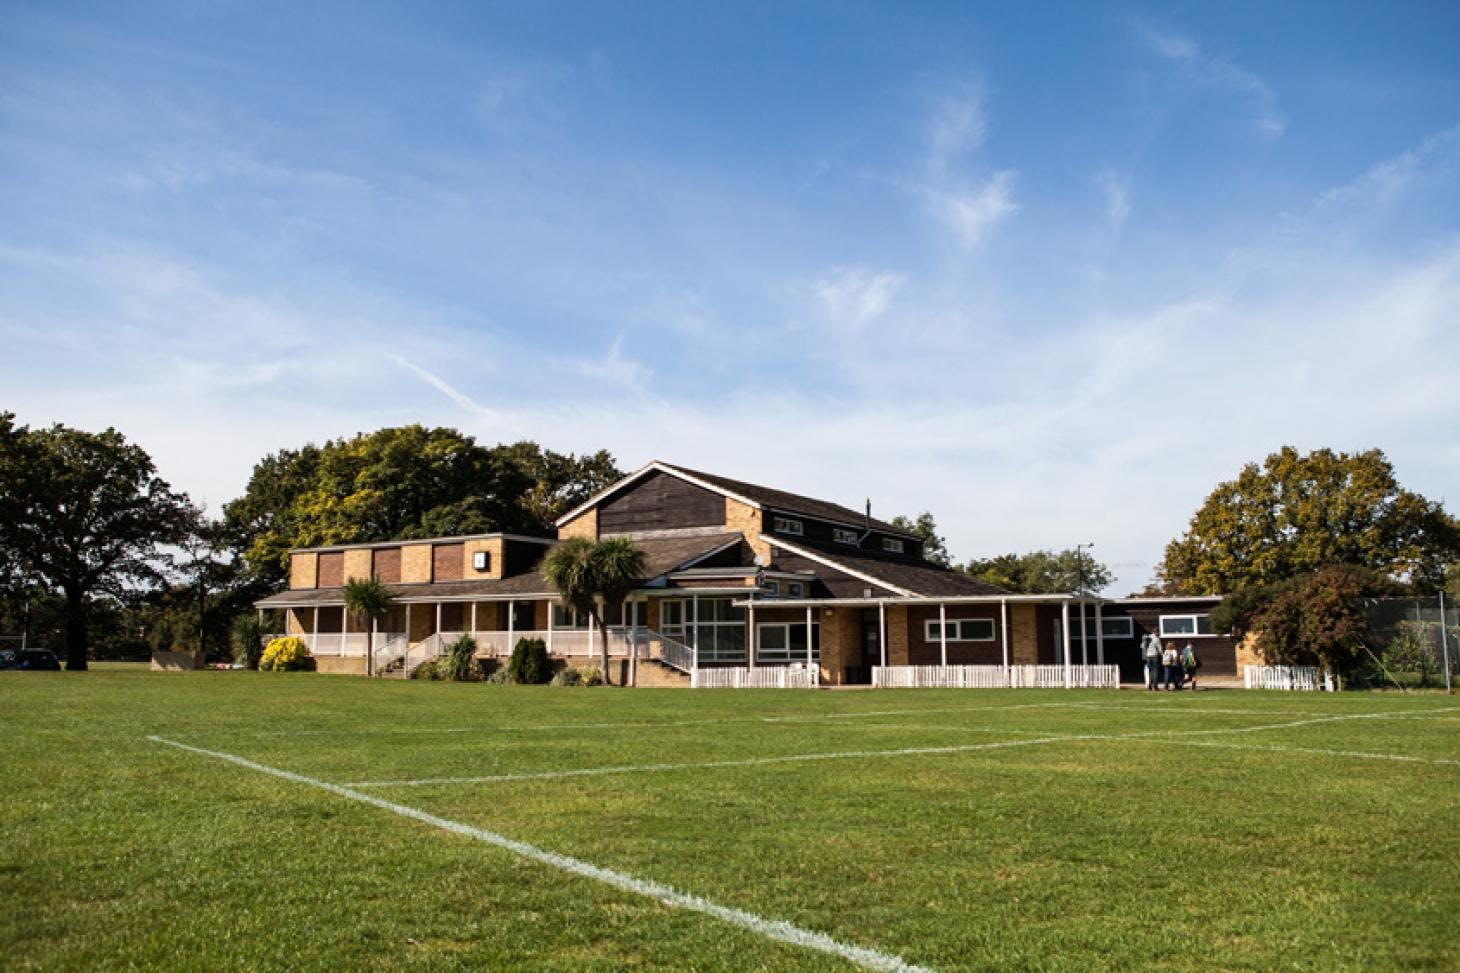 Trevor Bailey Sports Ground Union | Grass rugby pitch